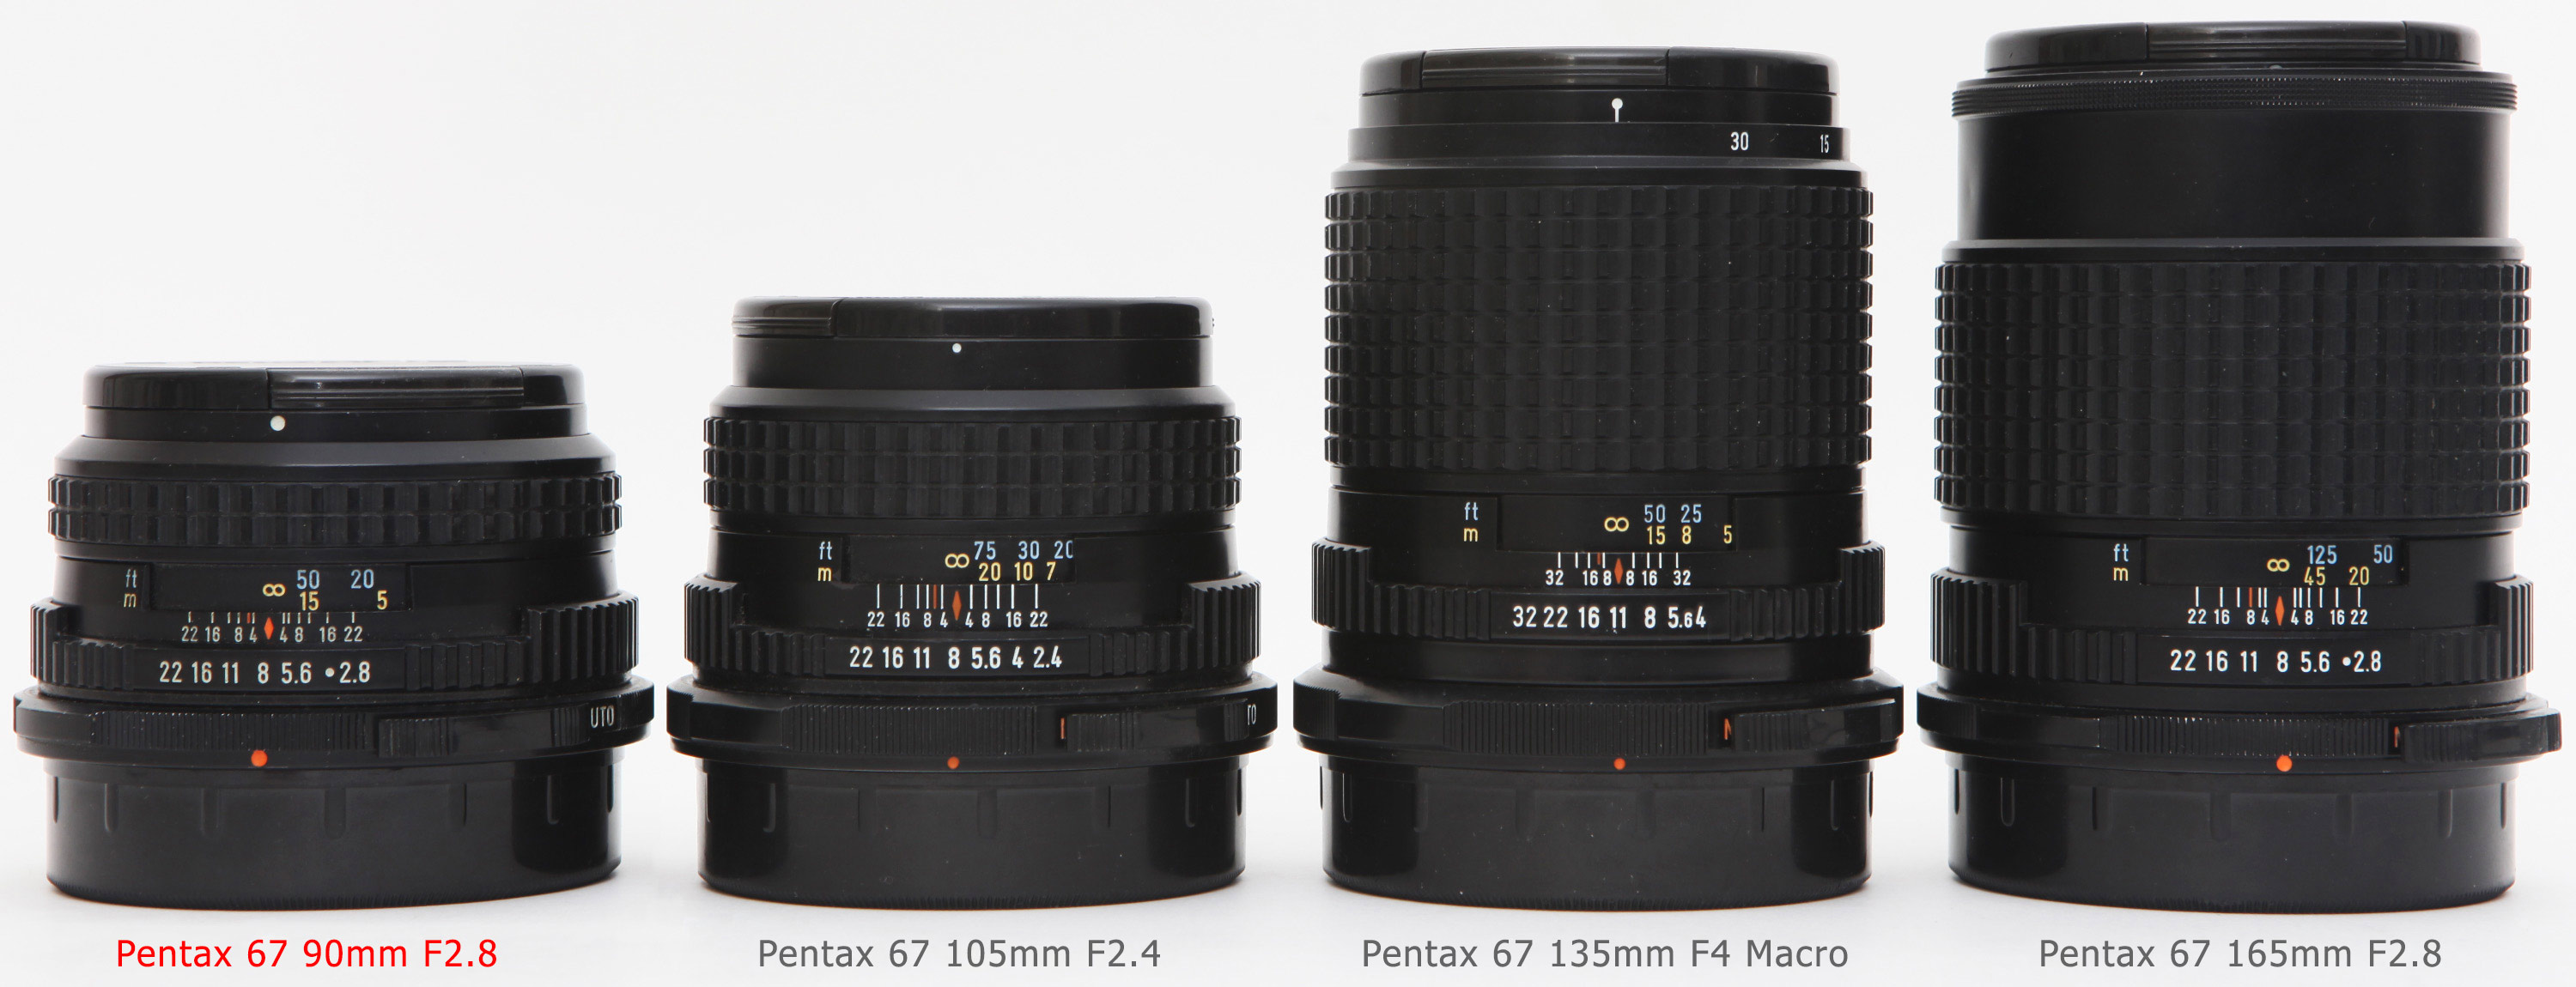 Pentax 67 90mm F2 8: Lens review, Details, Experience, Sample images